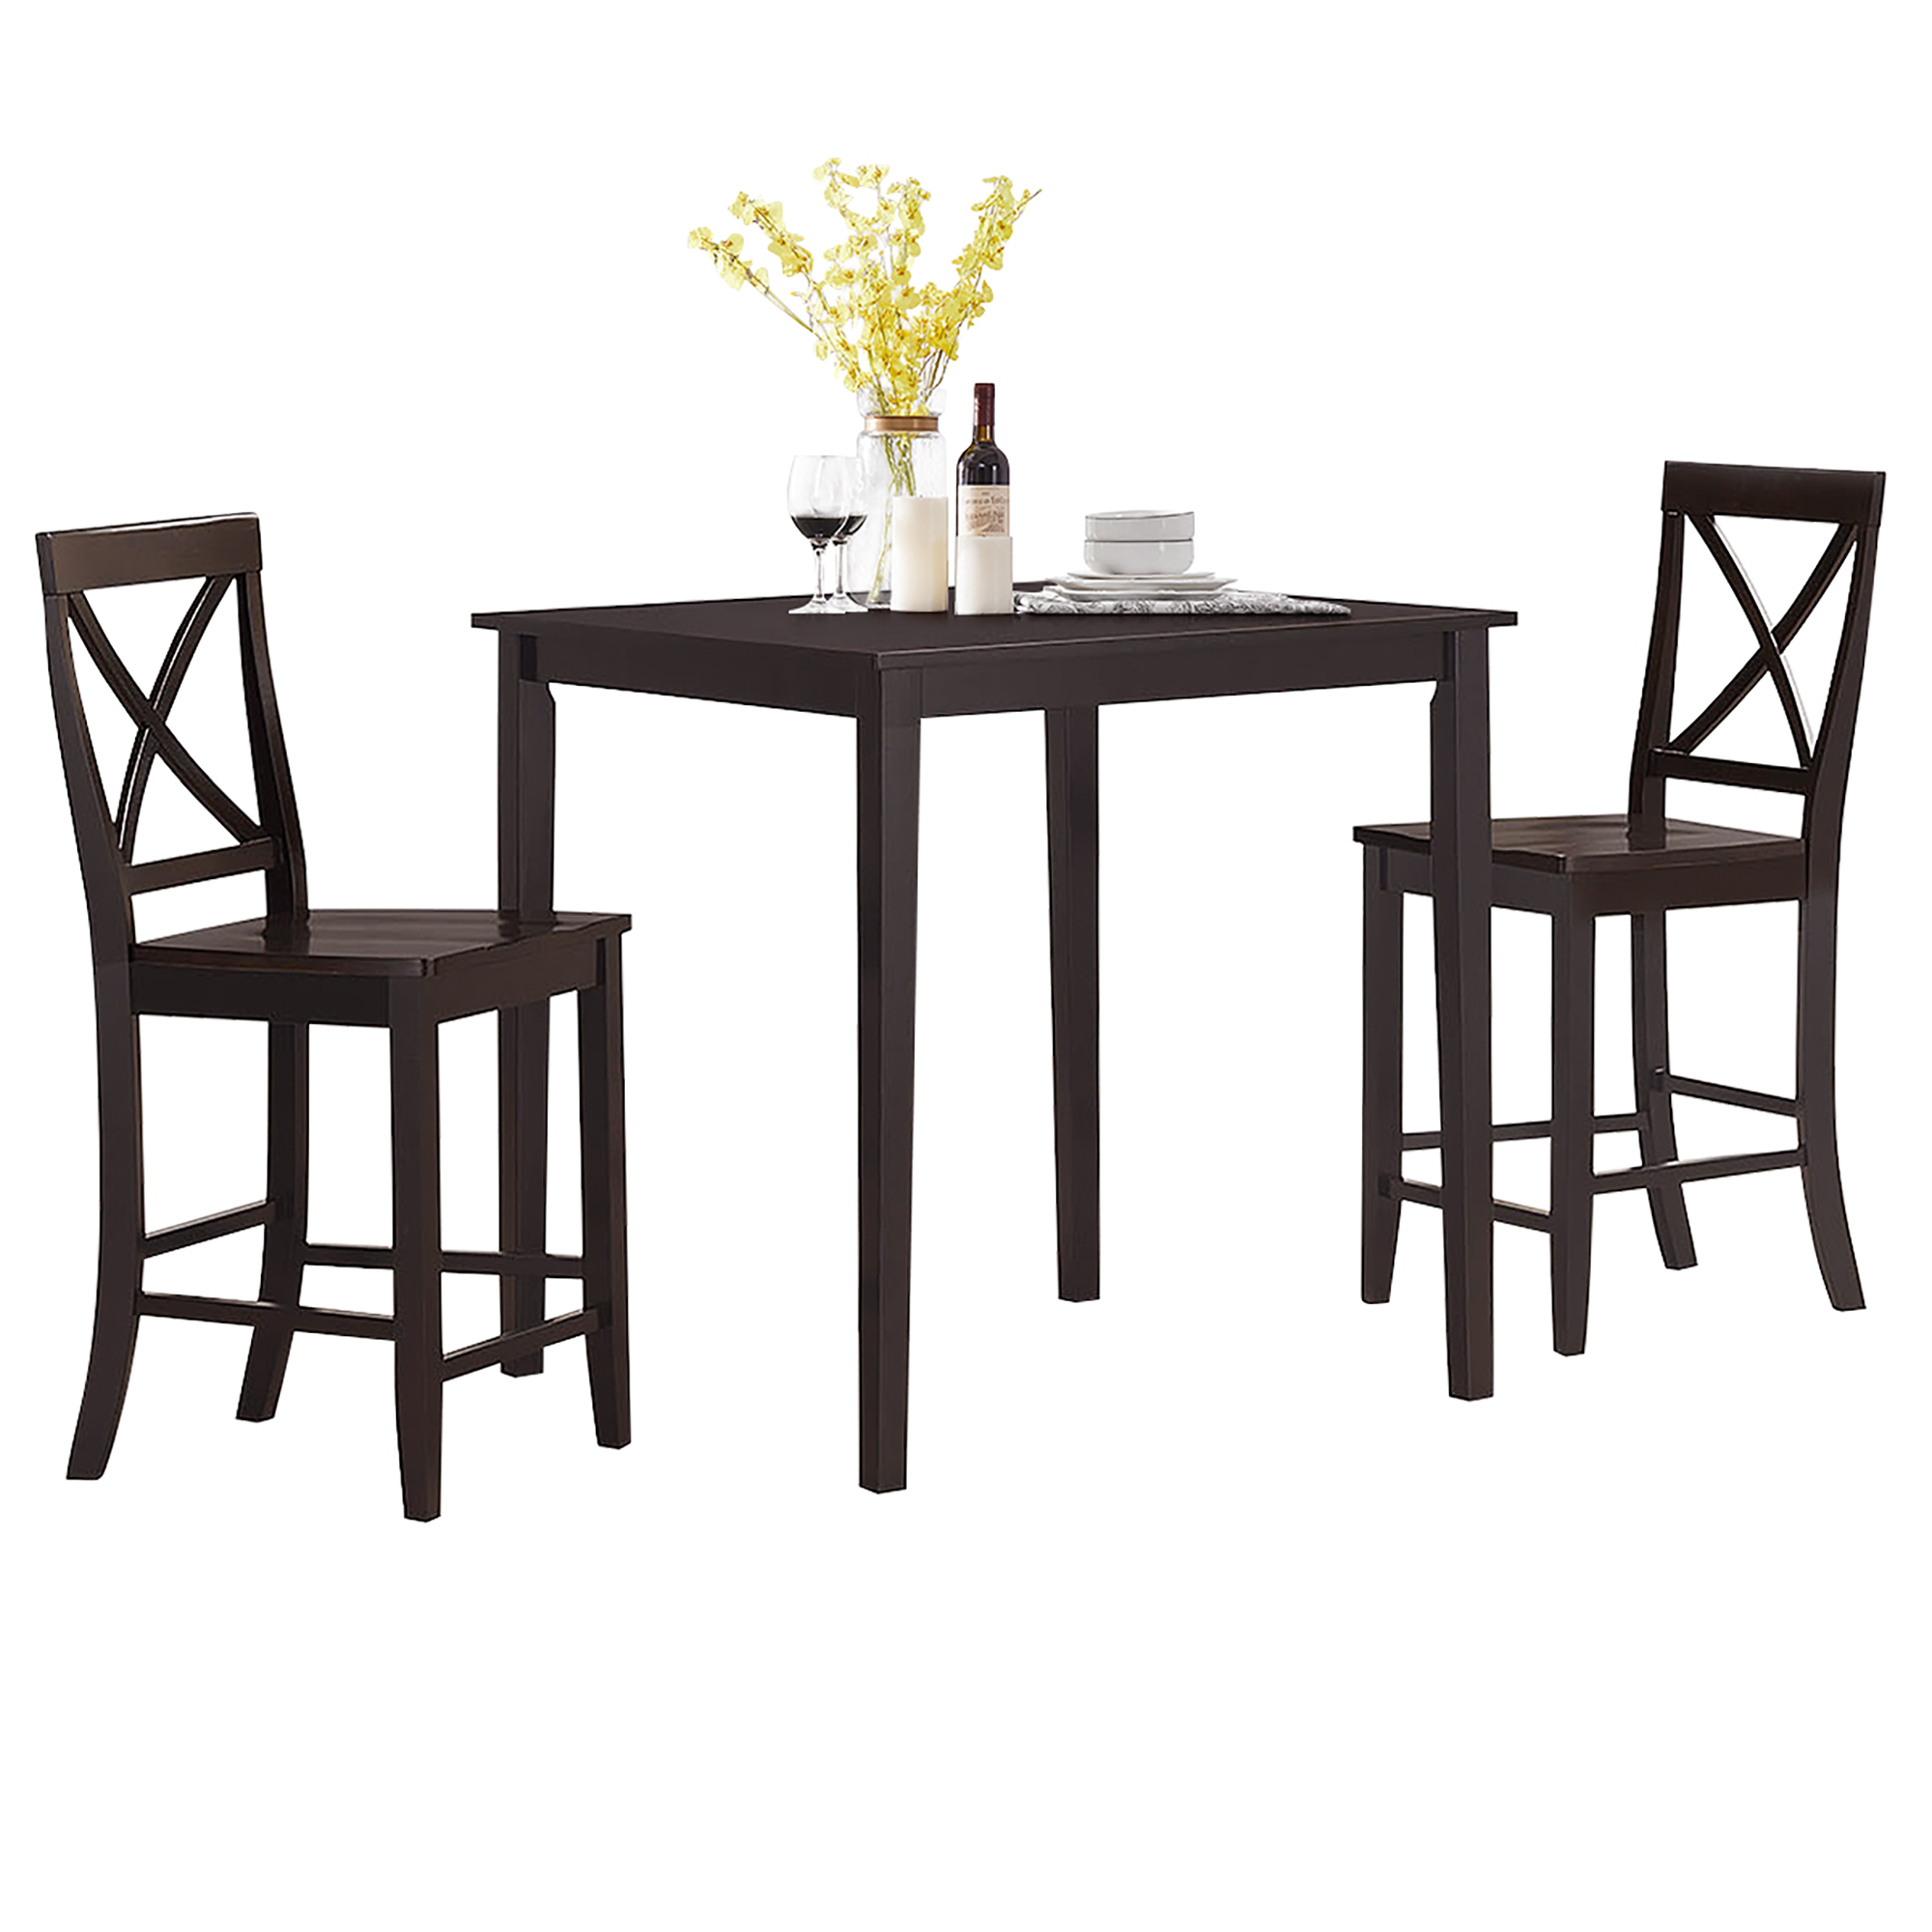 Details about Costway 10-Piece Kitchen Dining Set Counter-Height Square  Table with 10 Chairs